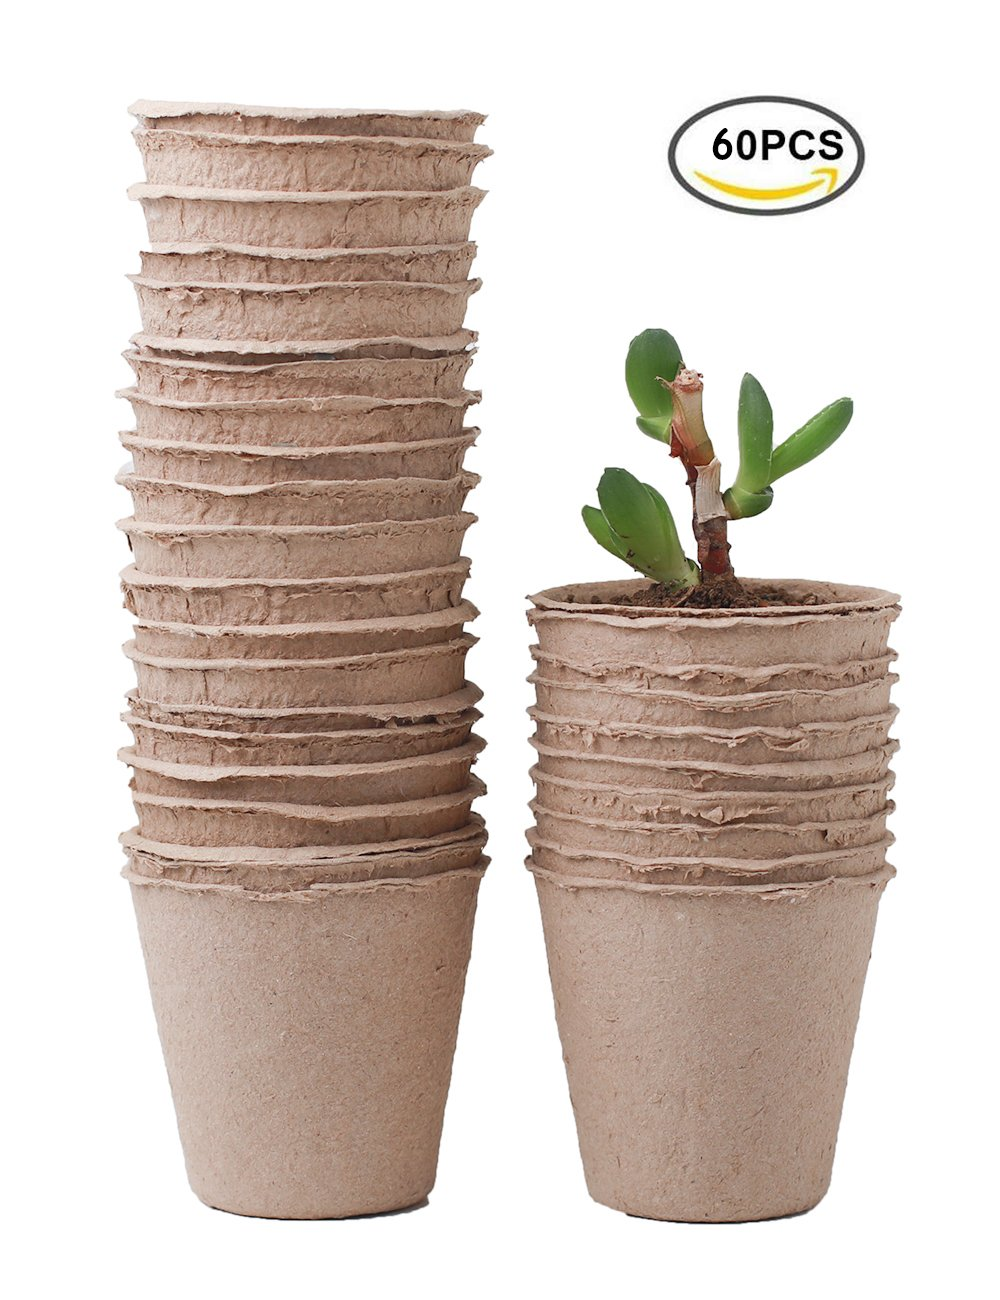 Cheap Peat Pots Lowes, find Peat Pots Lowes deals on line at Alibaba.com